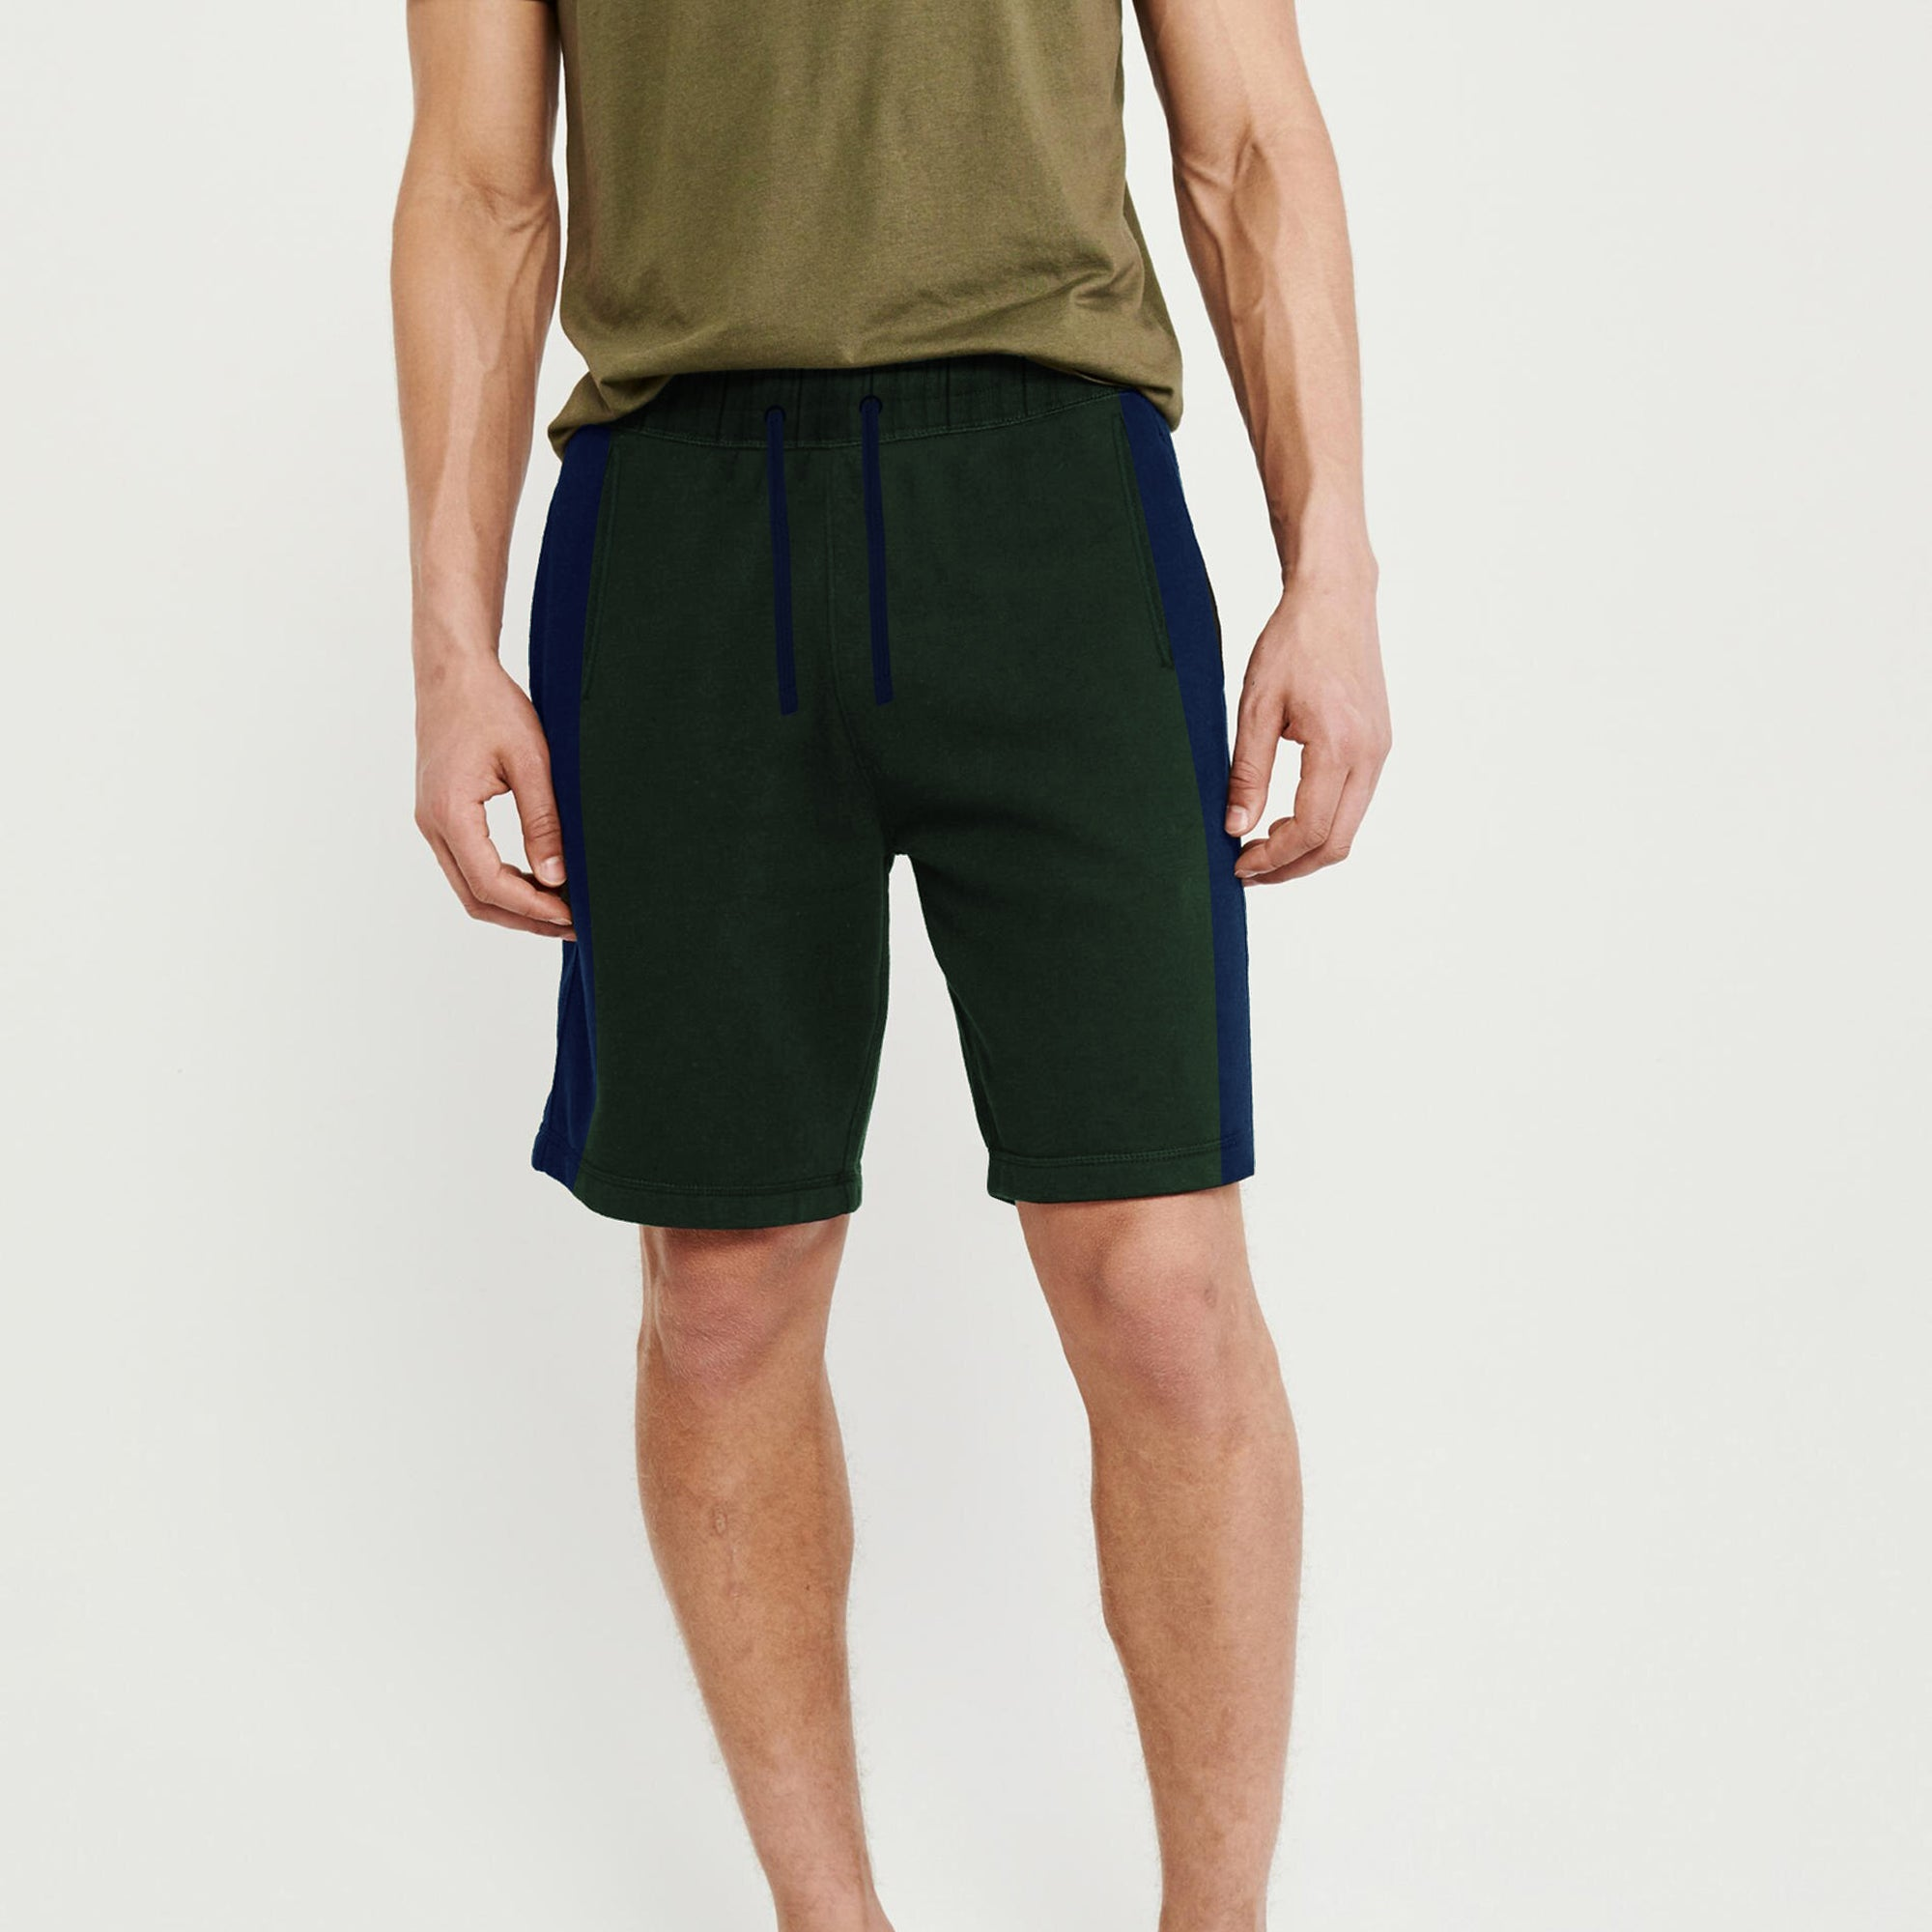 Next Summer Terry Jersey Short For Men-Dark Green & Blue Stripe-BE8822